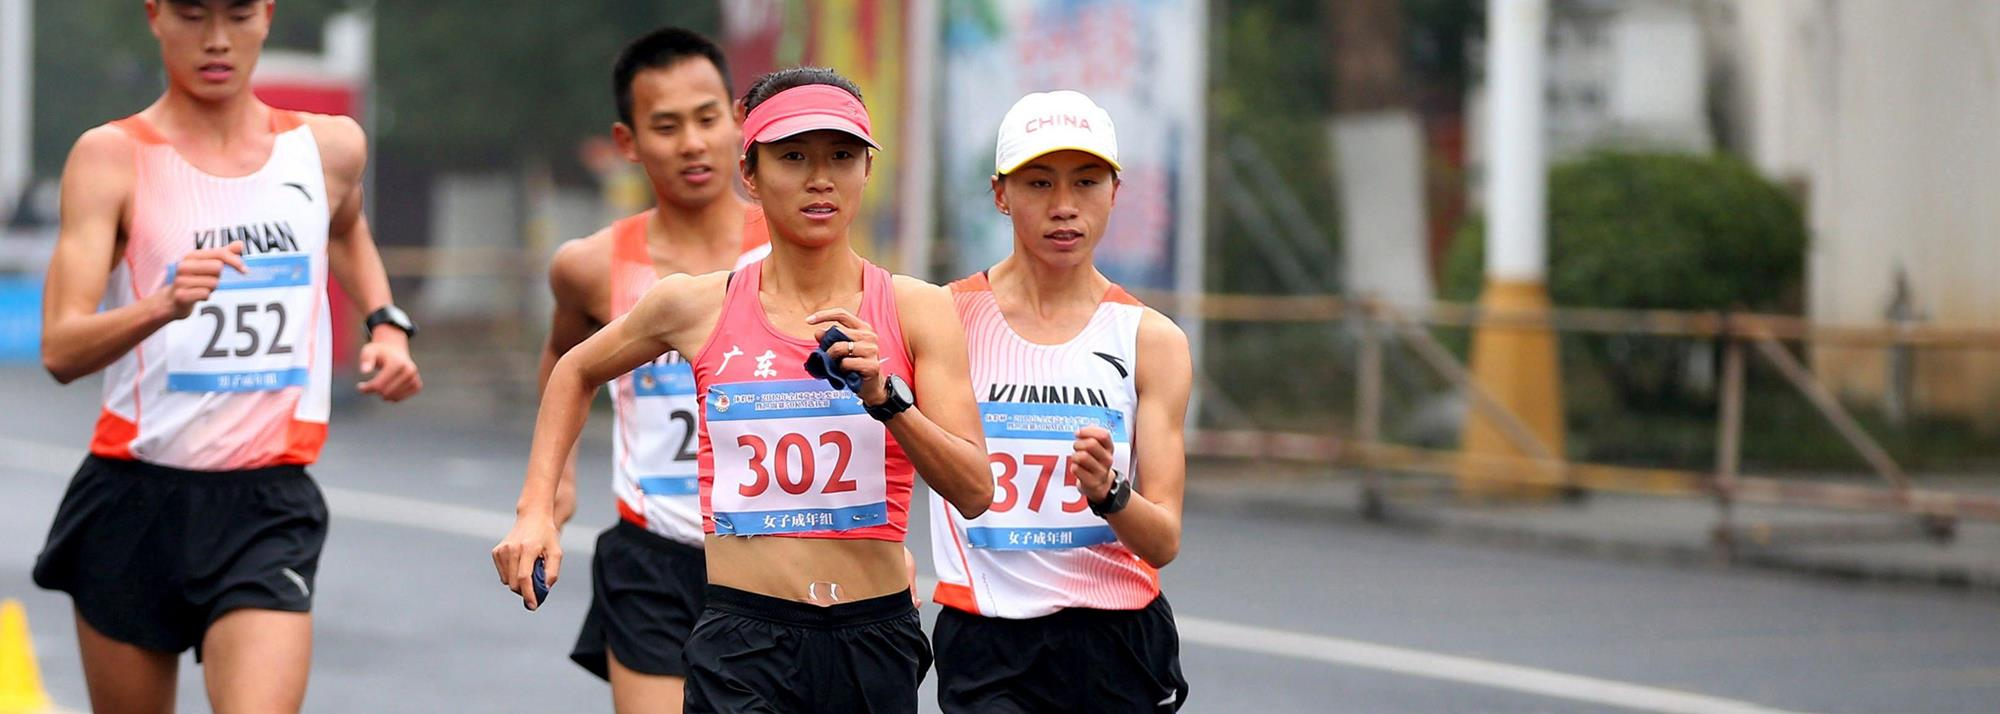 Olympic race walking qualifiers achieved by Liu in Taian and Karlstrom in Alytus